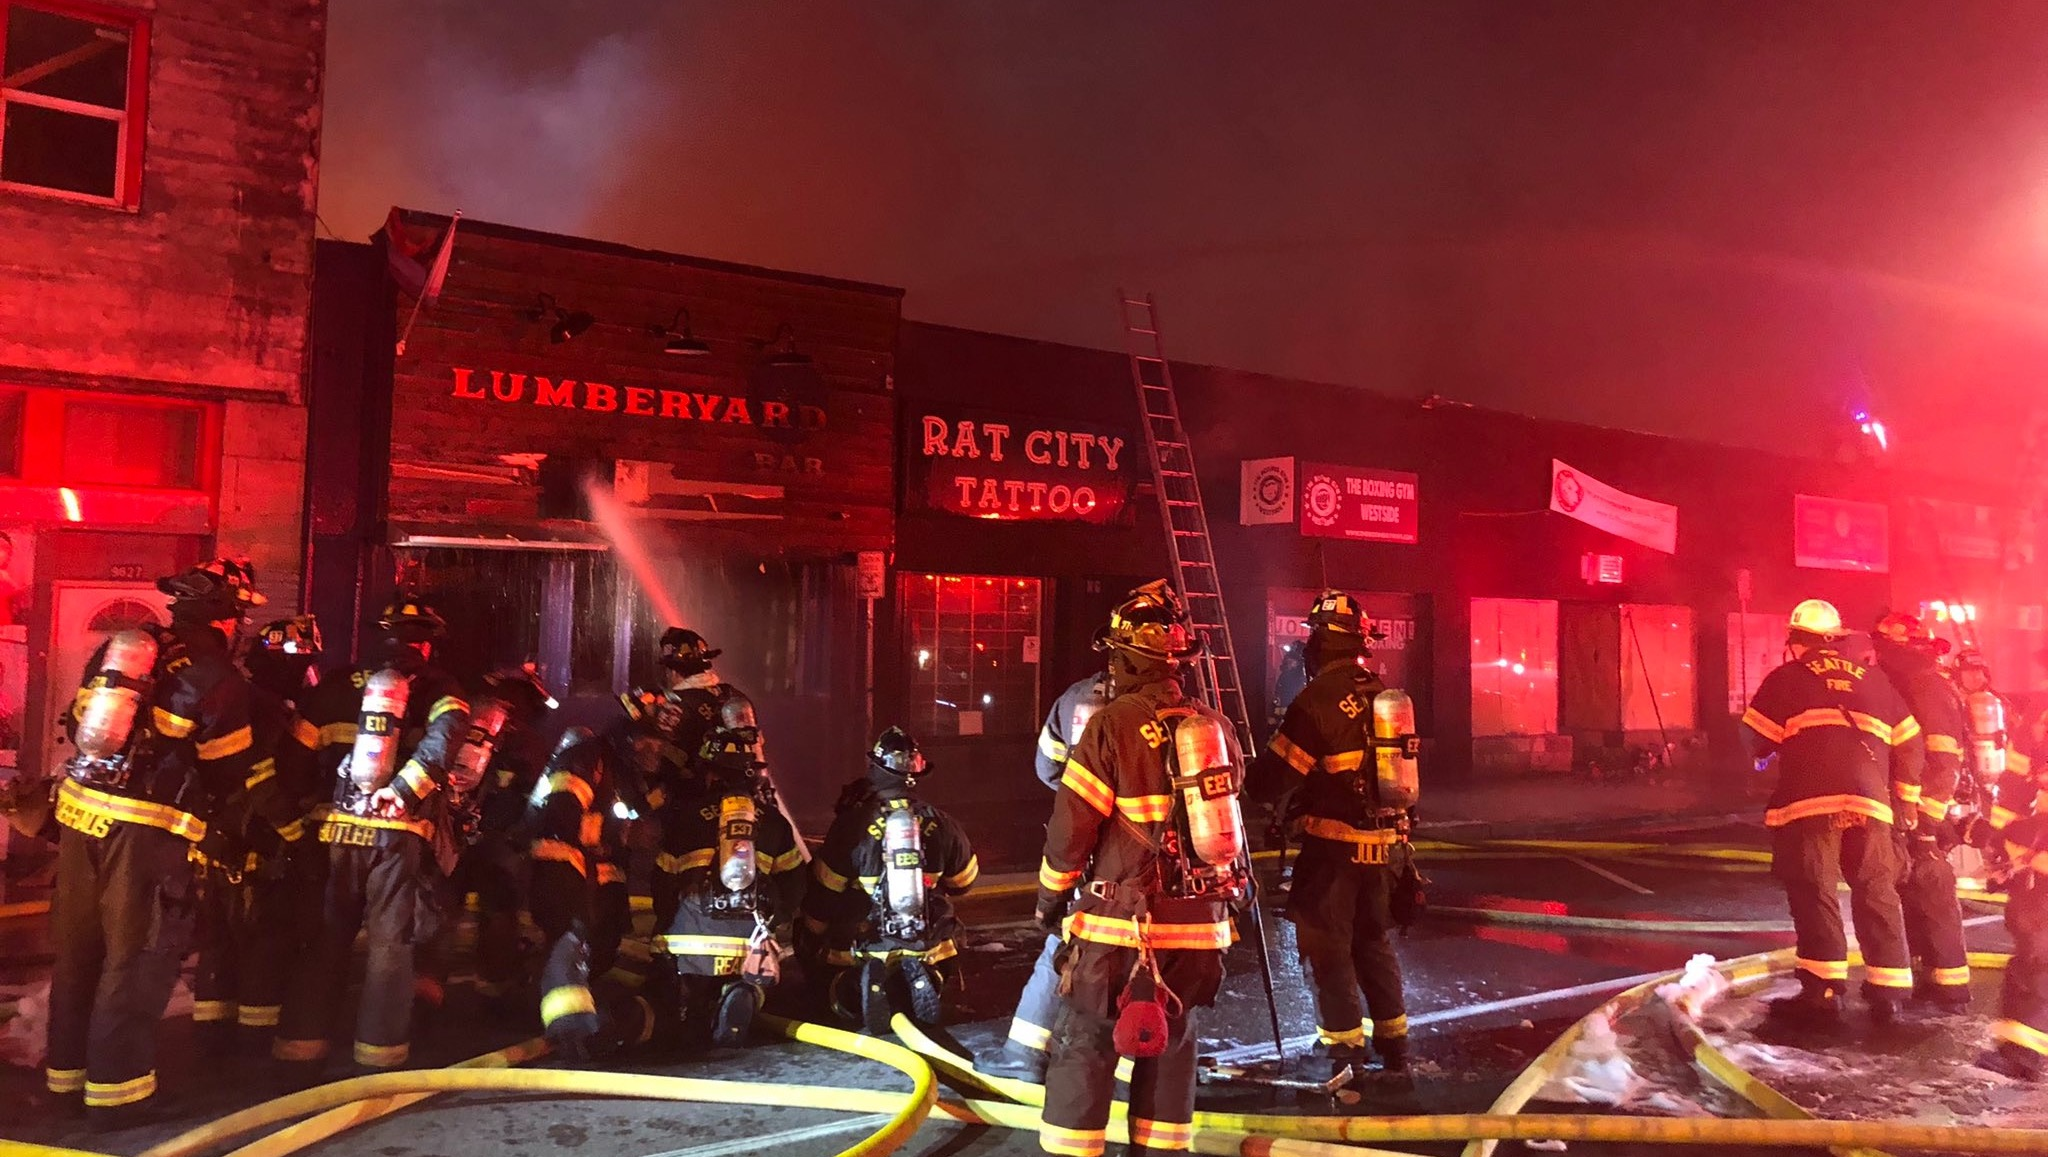 Firefighters work to control a blaze at night in fron of the Lumber Yard Bar and Rat City Tattoo in White Center